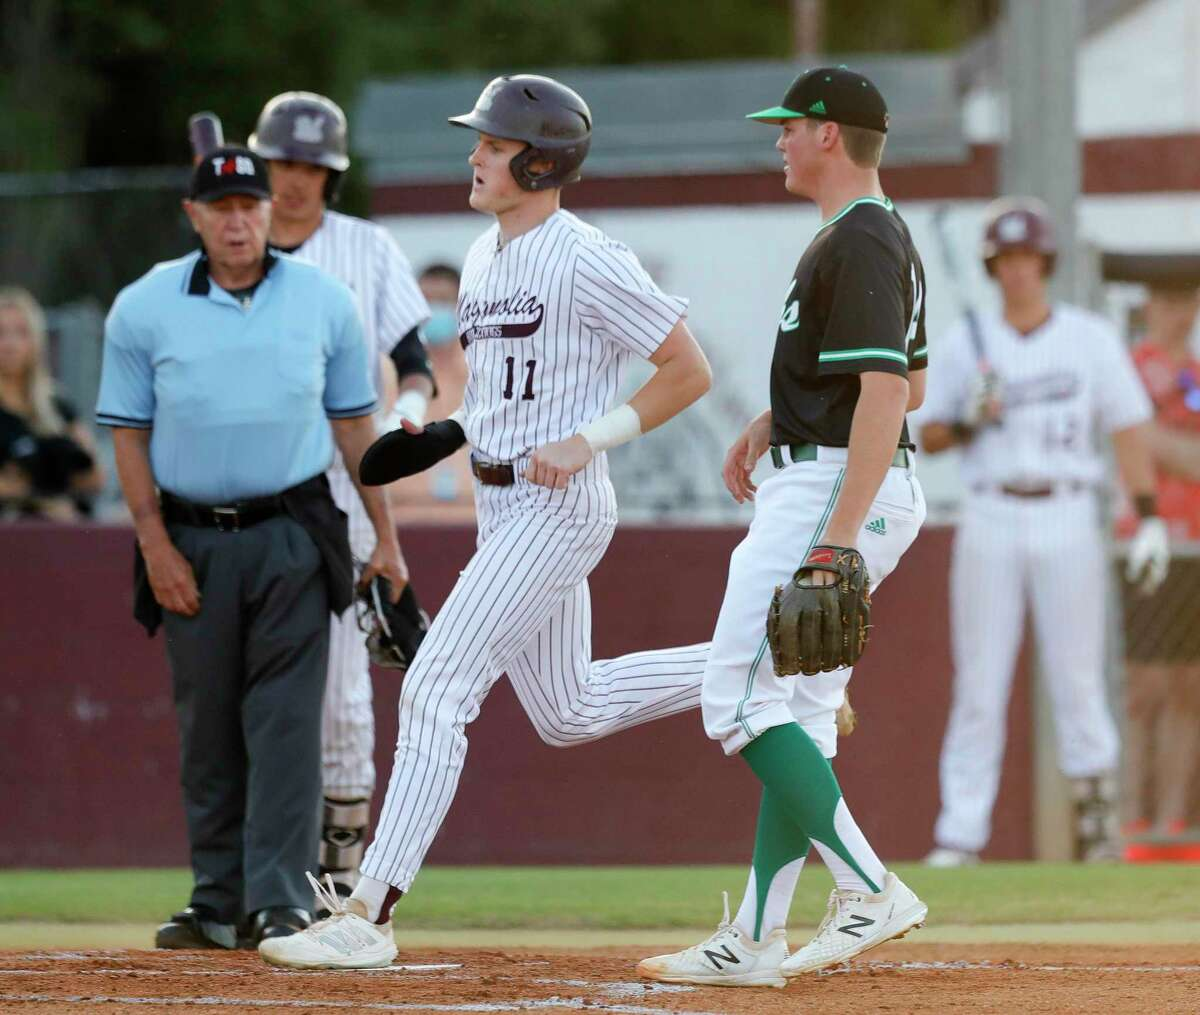 Tyce Armstrong #11 of Magnolia scores on a wild pitch from Brenham starting pitcher Ben Boose during the first inning of a District 20-5A high school baseball game at Magnolia High School, Tuesday, April 20, 2021, in Magnolia.